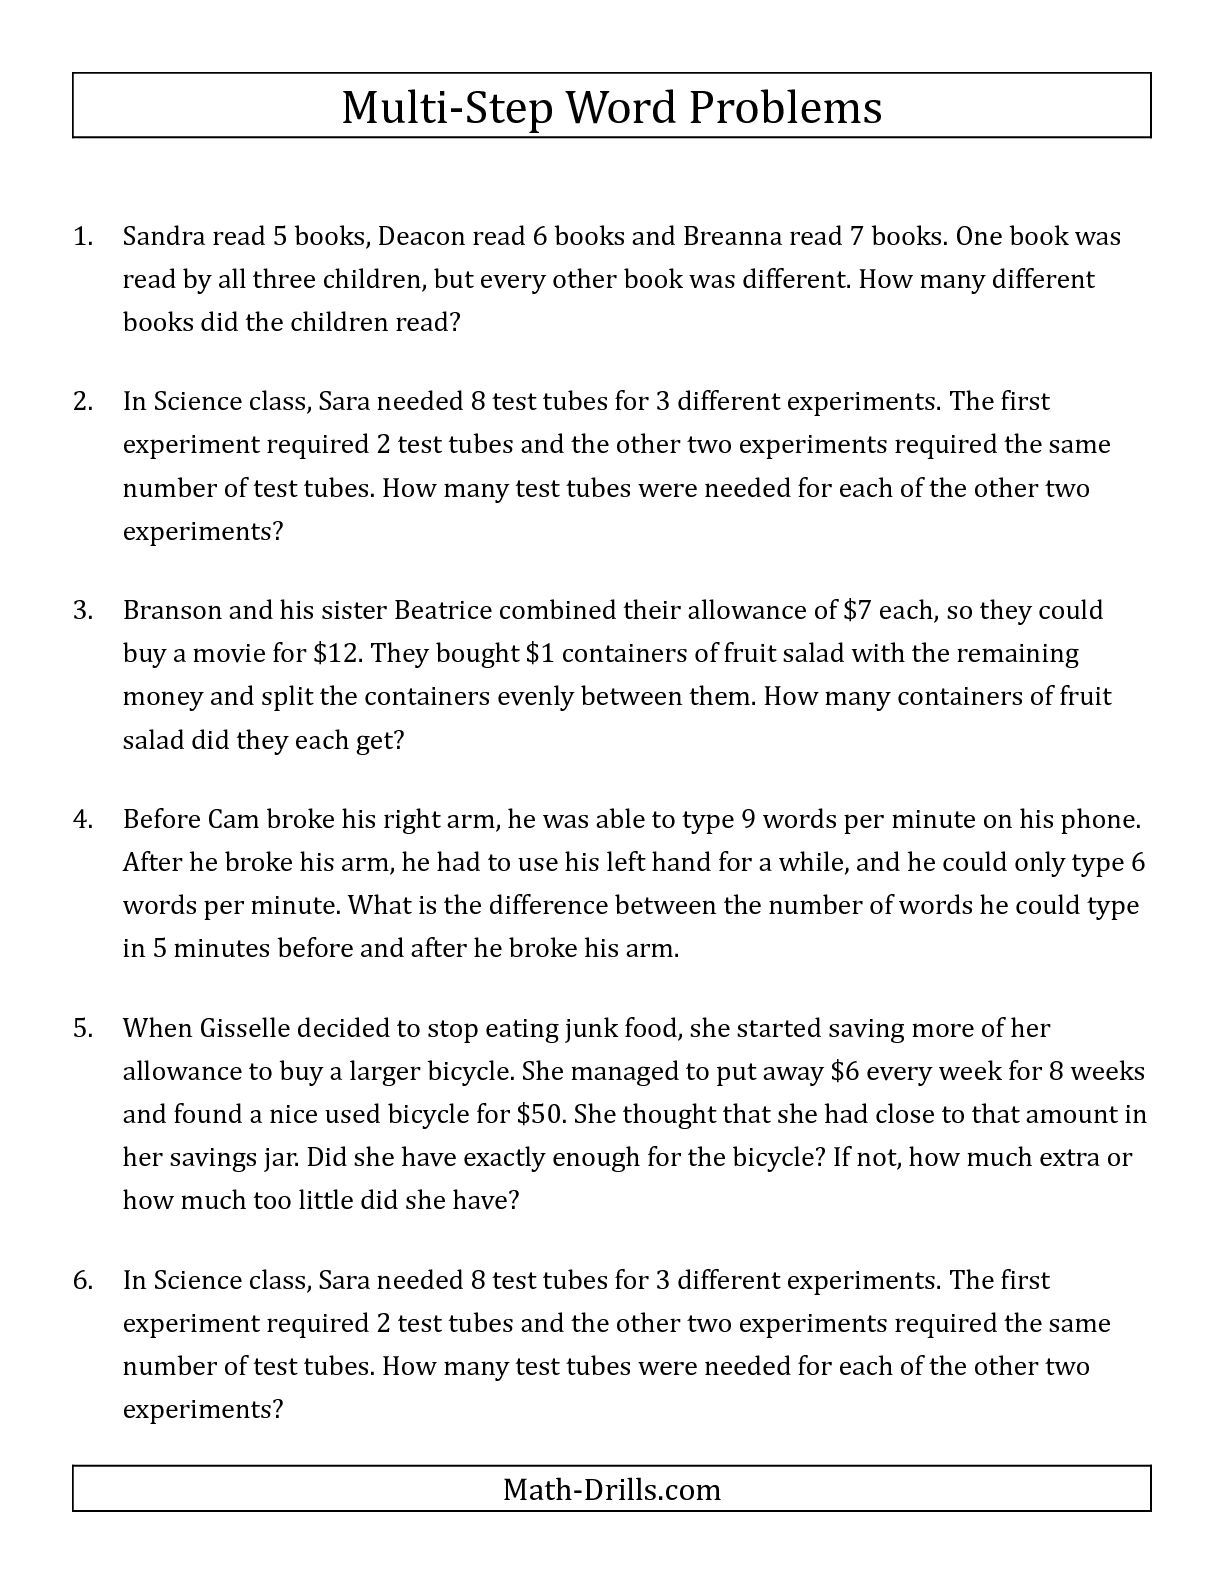 The Easy Multi-Step Word Problems math worksheet from the ...